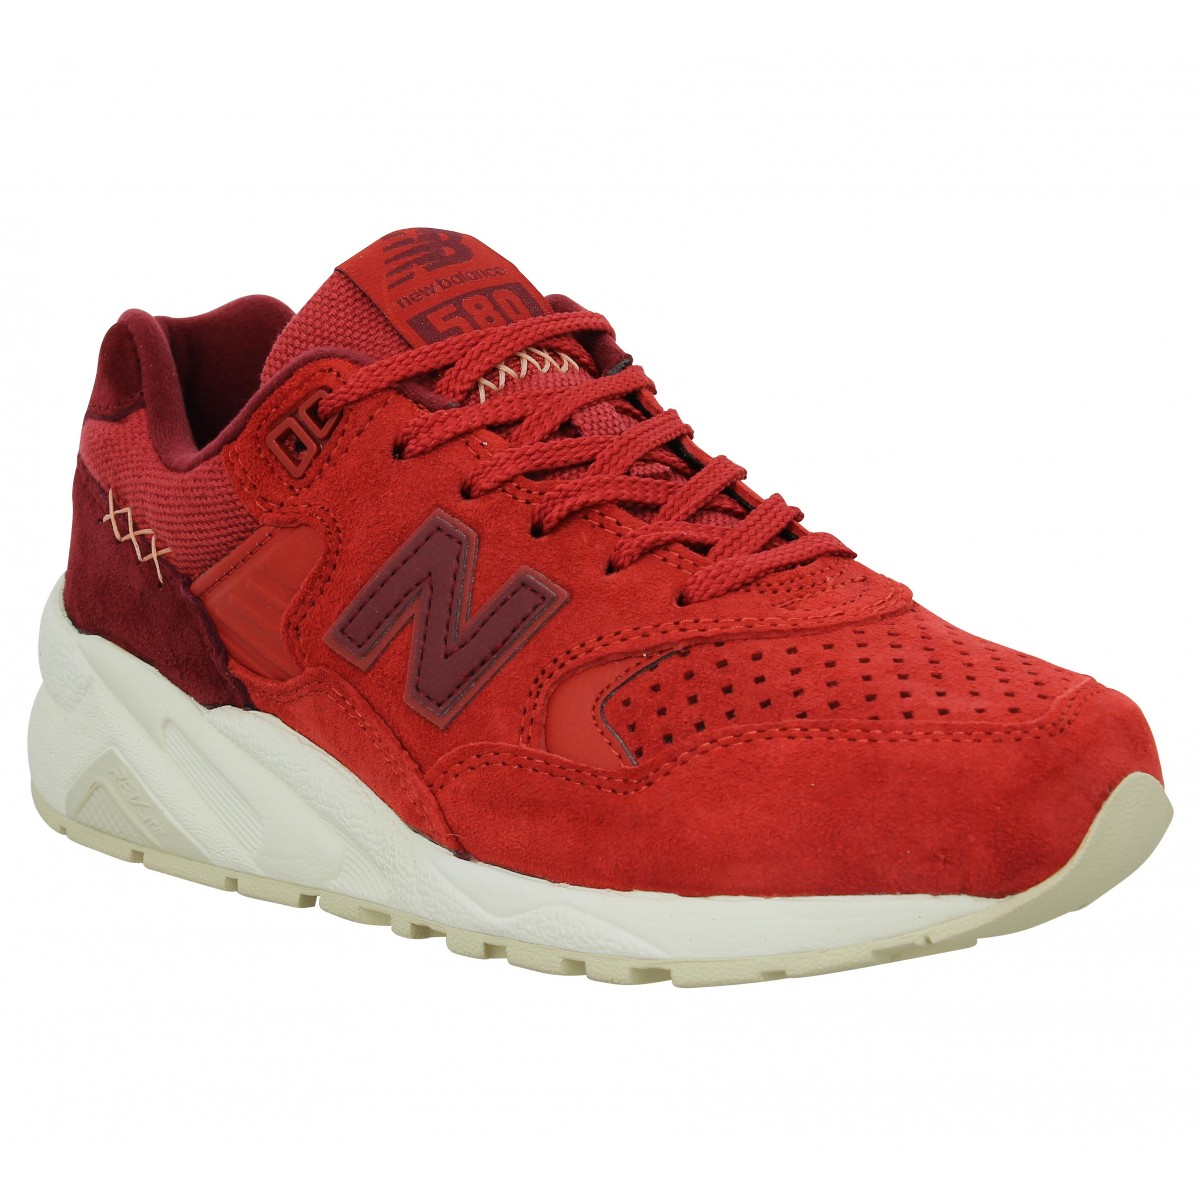 Baskets NEW BALANCE 580 velours toile Femme Red